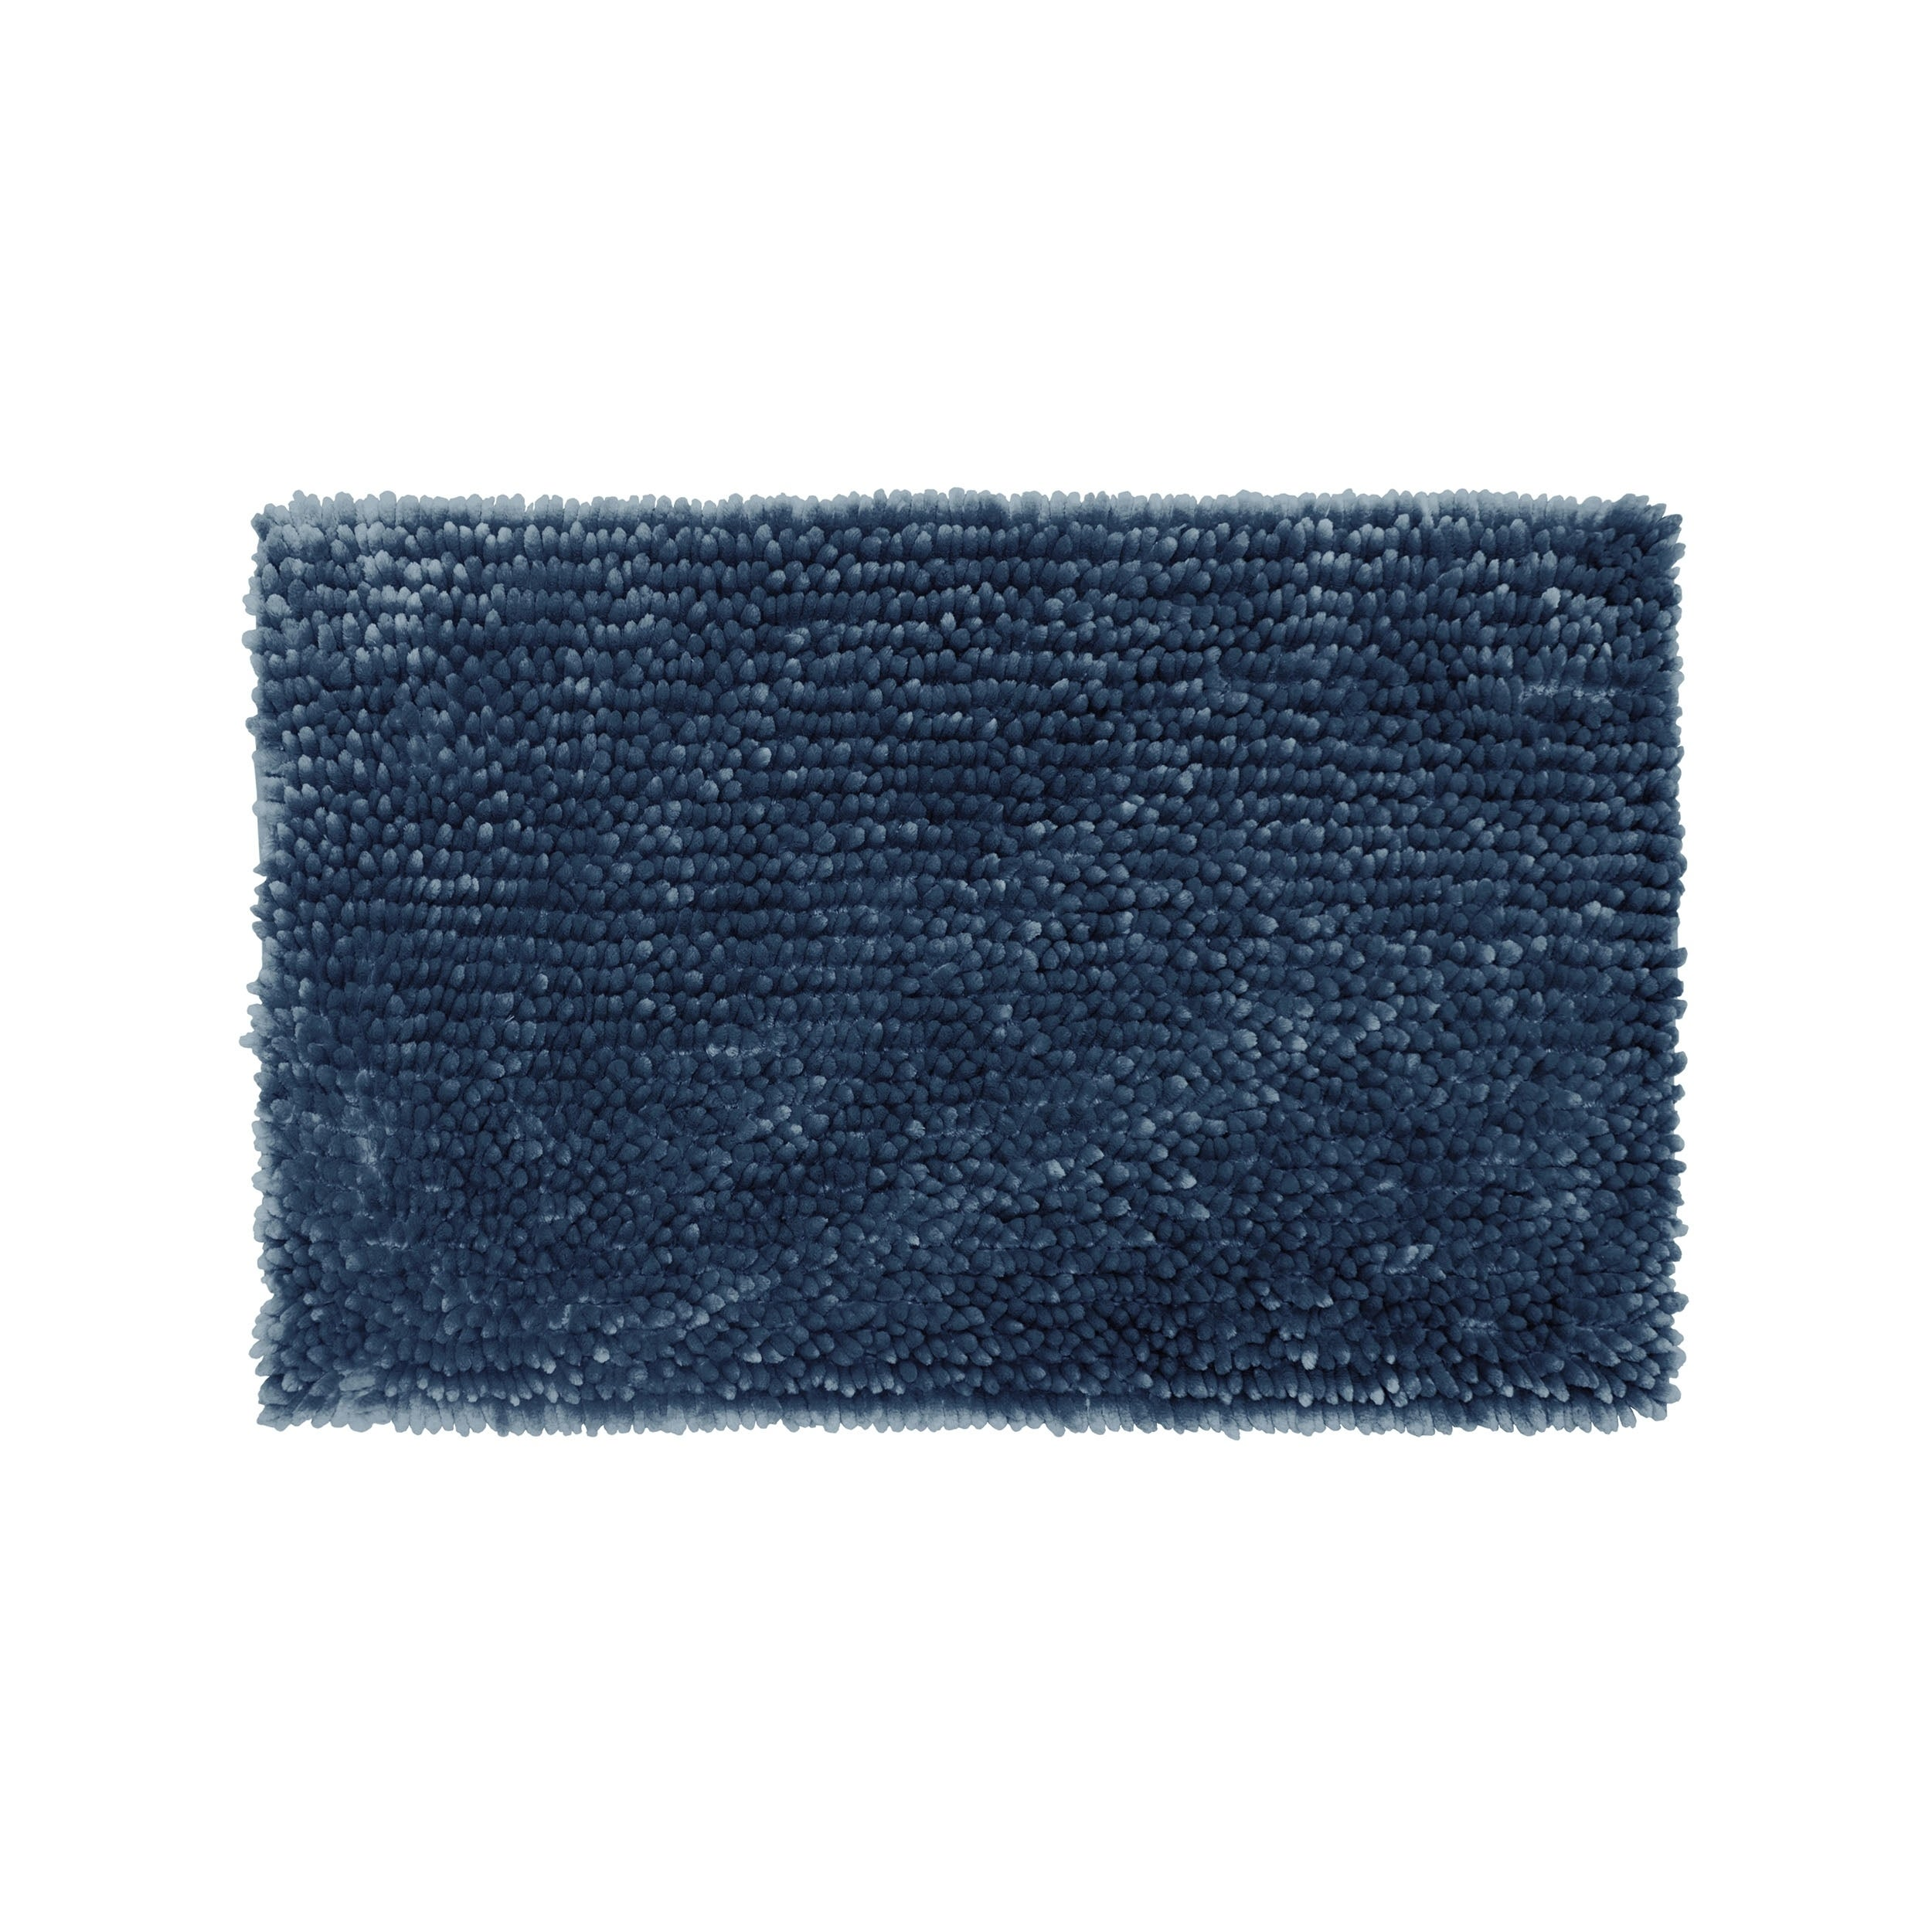 Juicy Couture Er Chenille Bath Rug